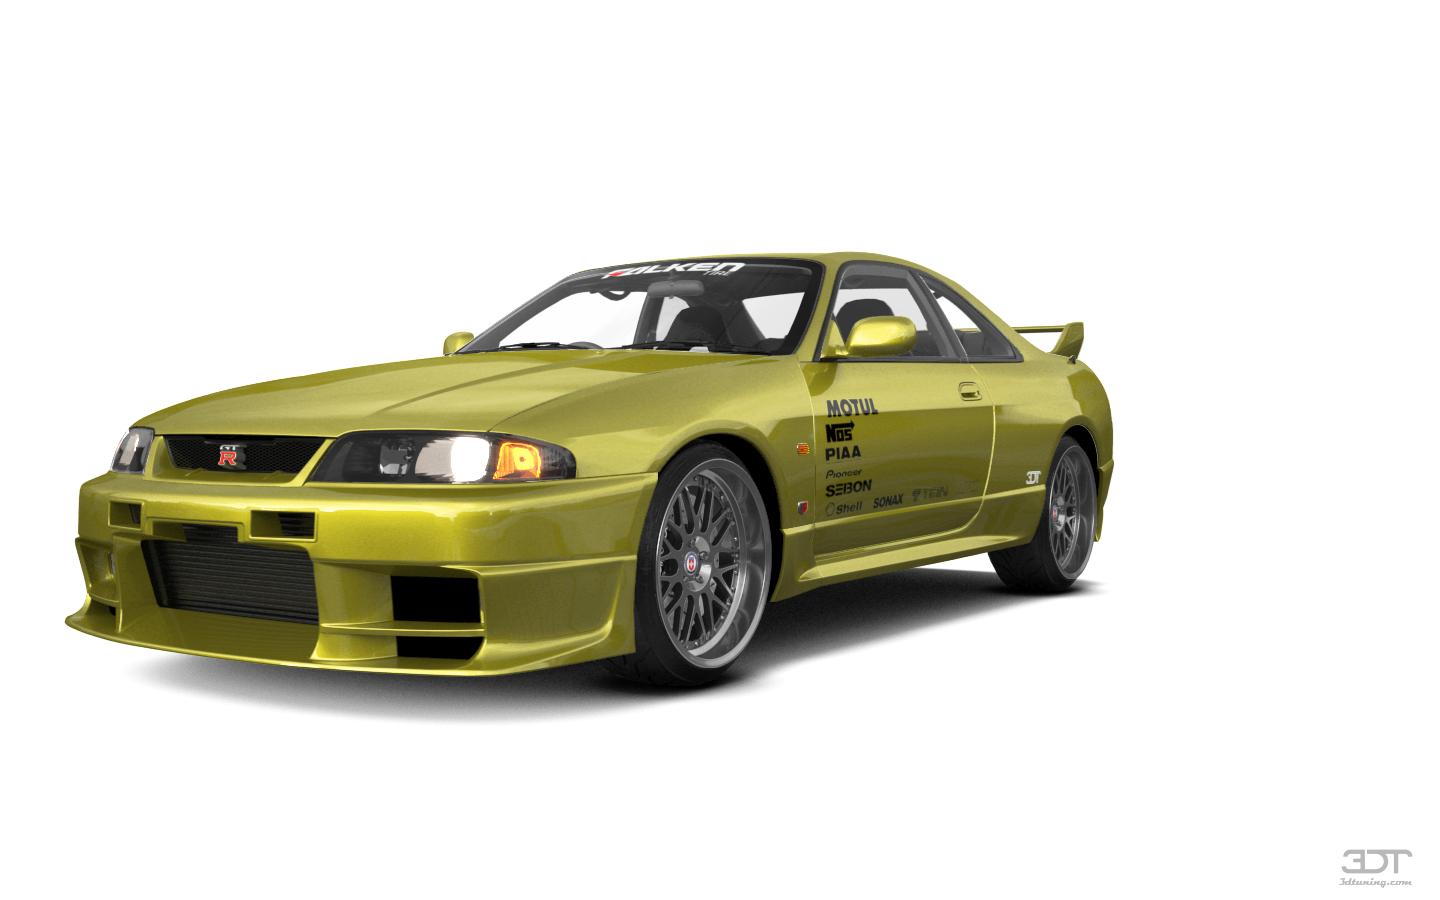 Nissan Skyline GT-R 2 Door Coupe 1995 tuning